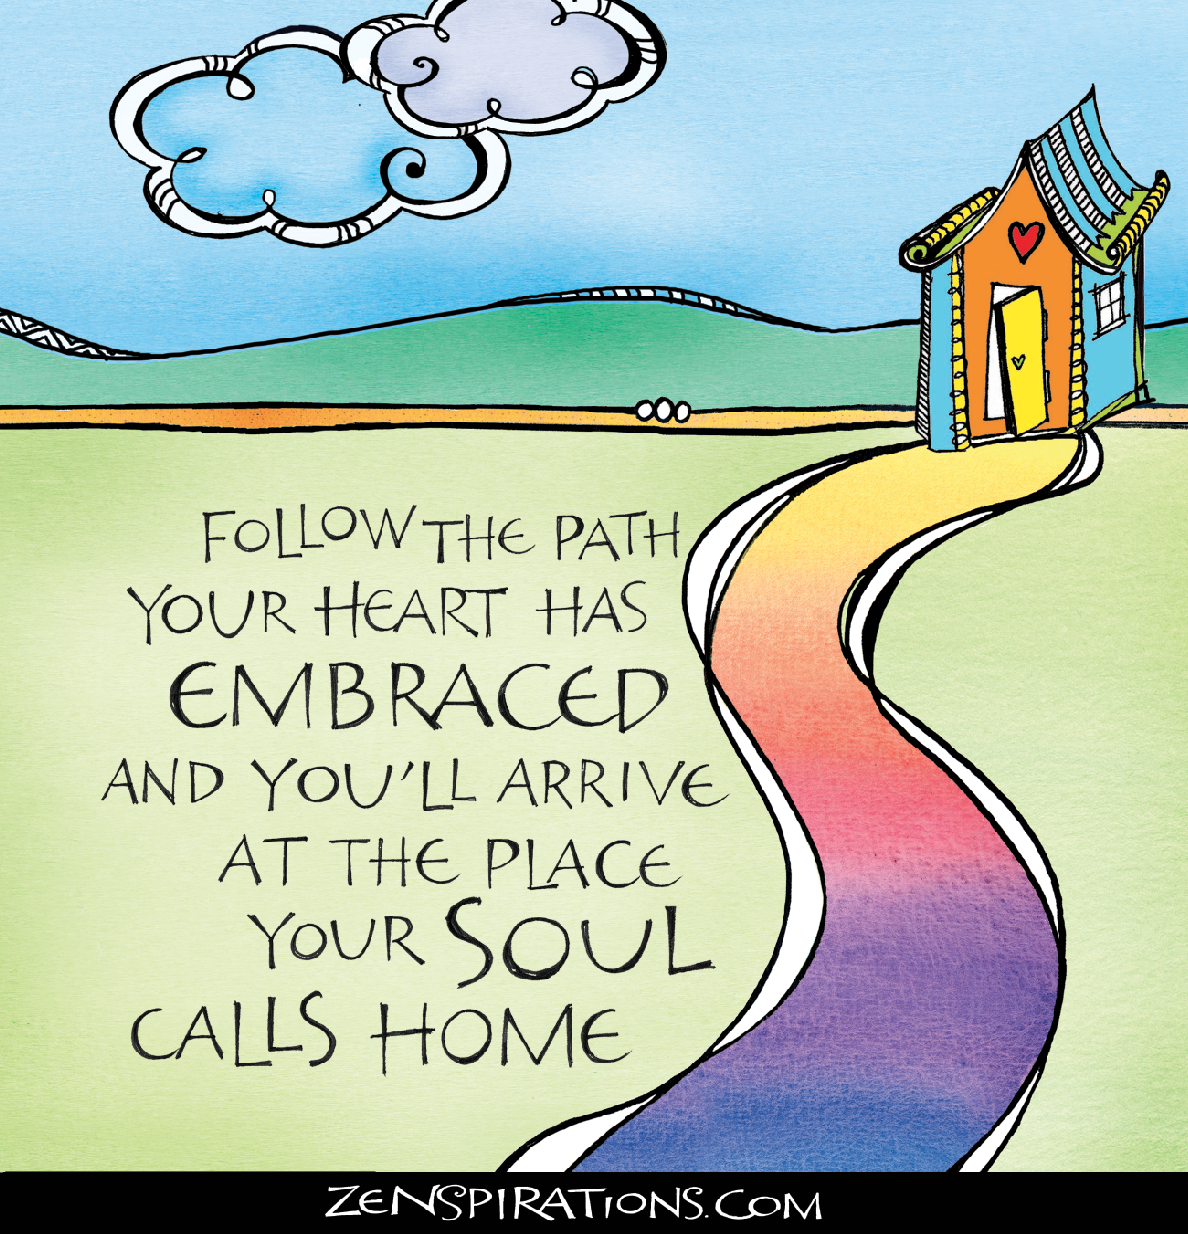 This Zenspirations design by Joanne Fink was created for her new book, With God All Things Are Possible, published by Harvest House.